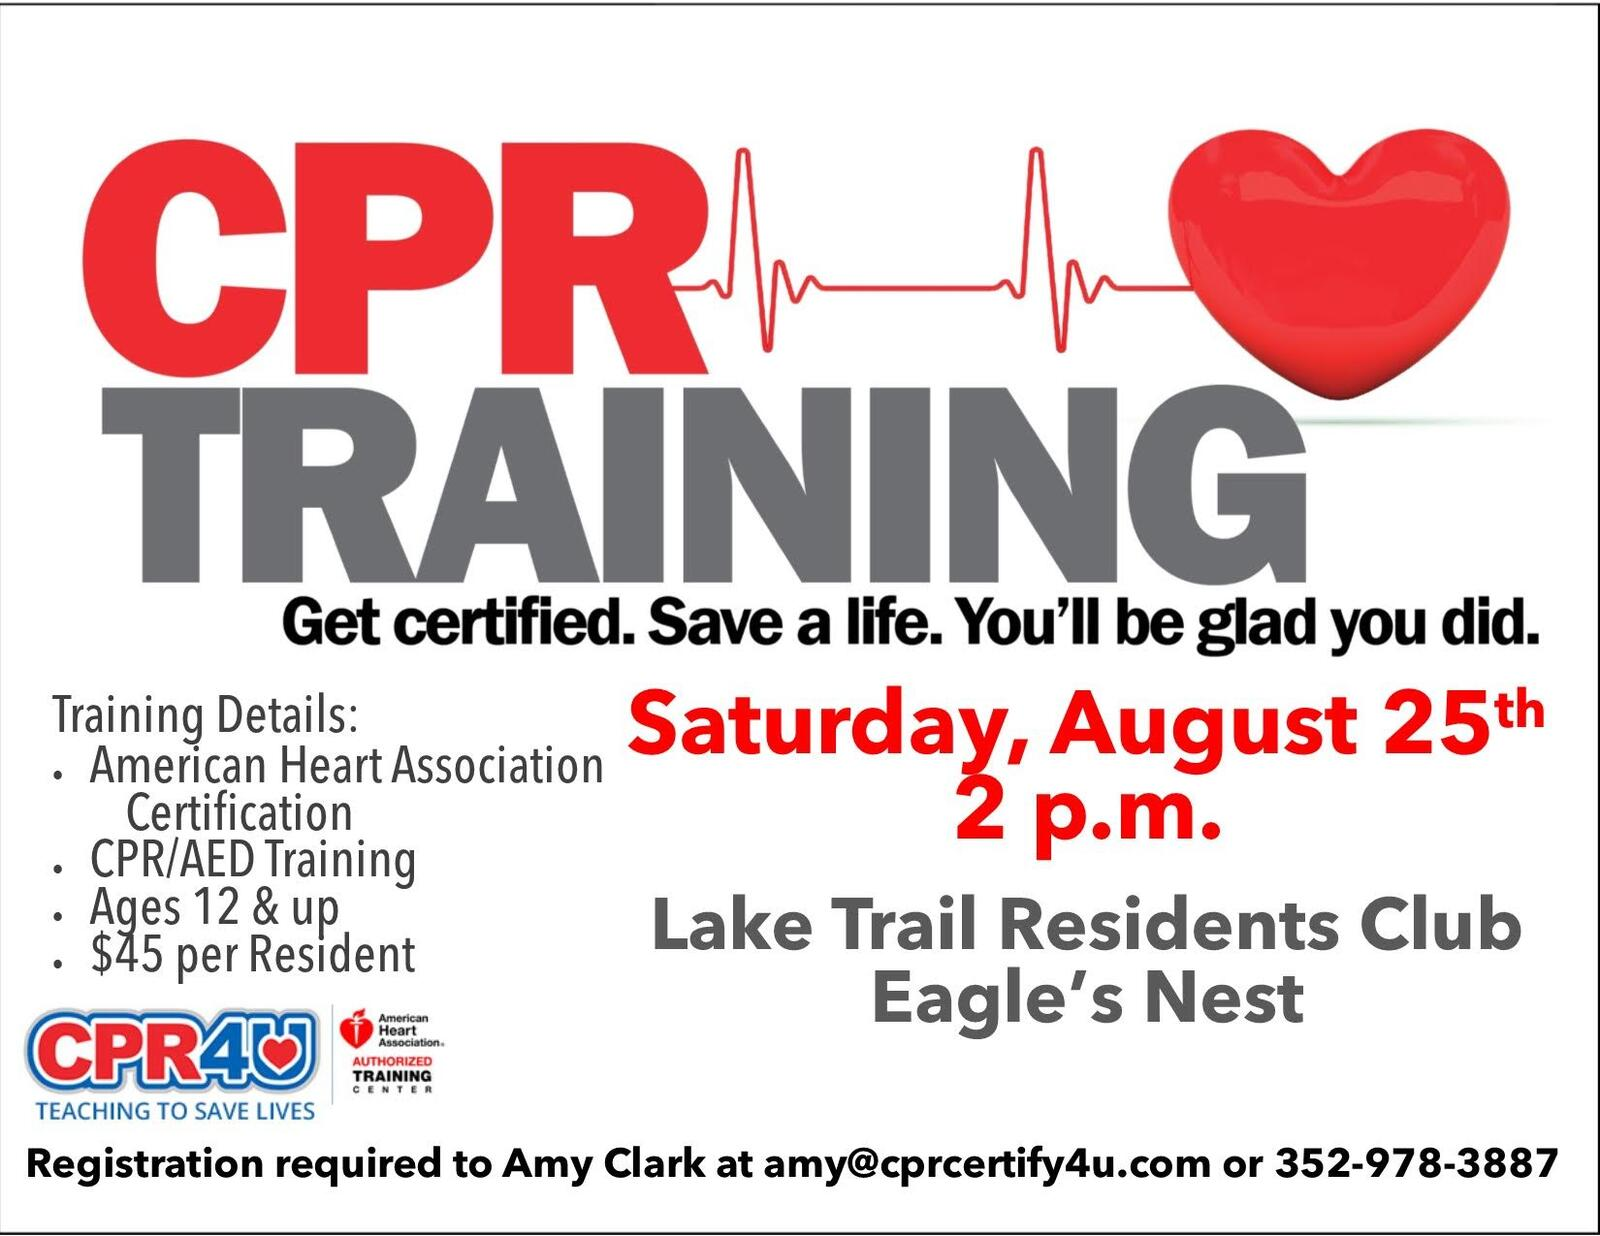 Aug 25 Cpr Training American Heart Association Certification